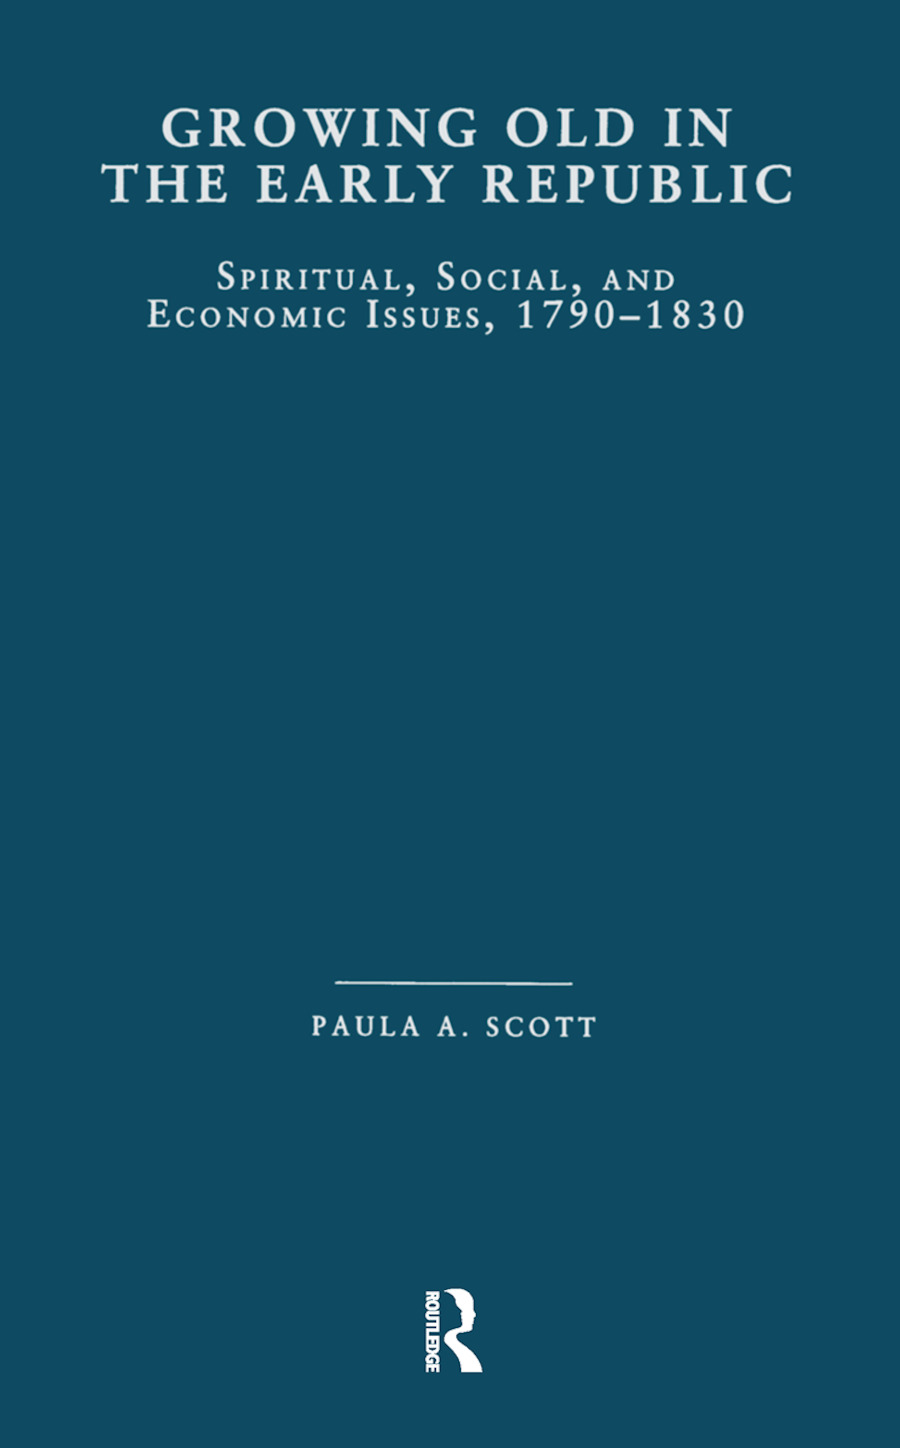 Growing Old in the Early Republic: Spiritual, Social, and Economic Issues, 1790-1830 book cover